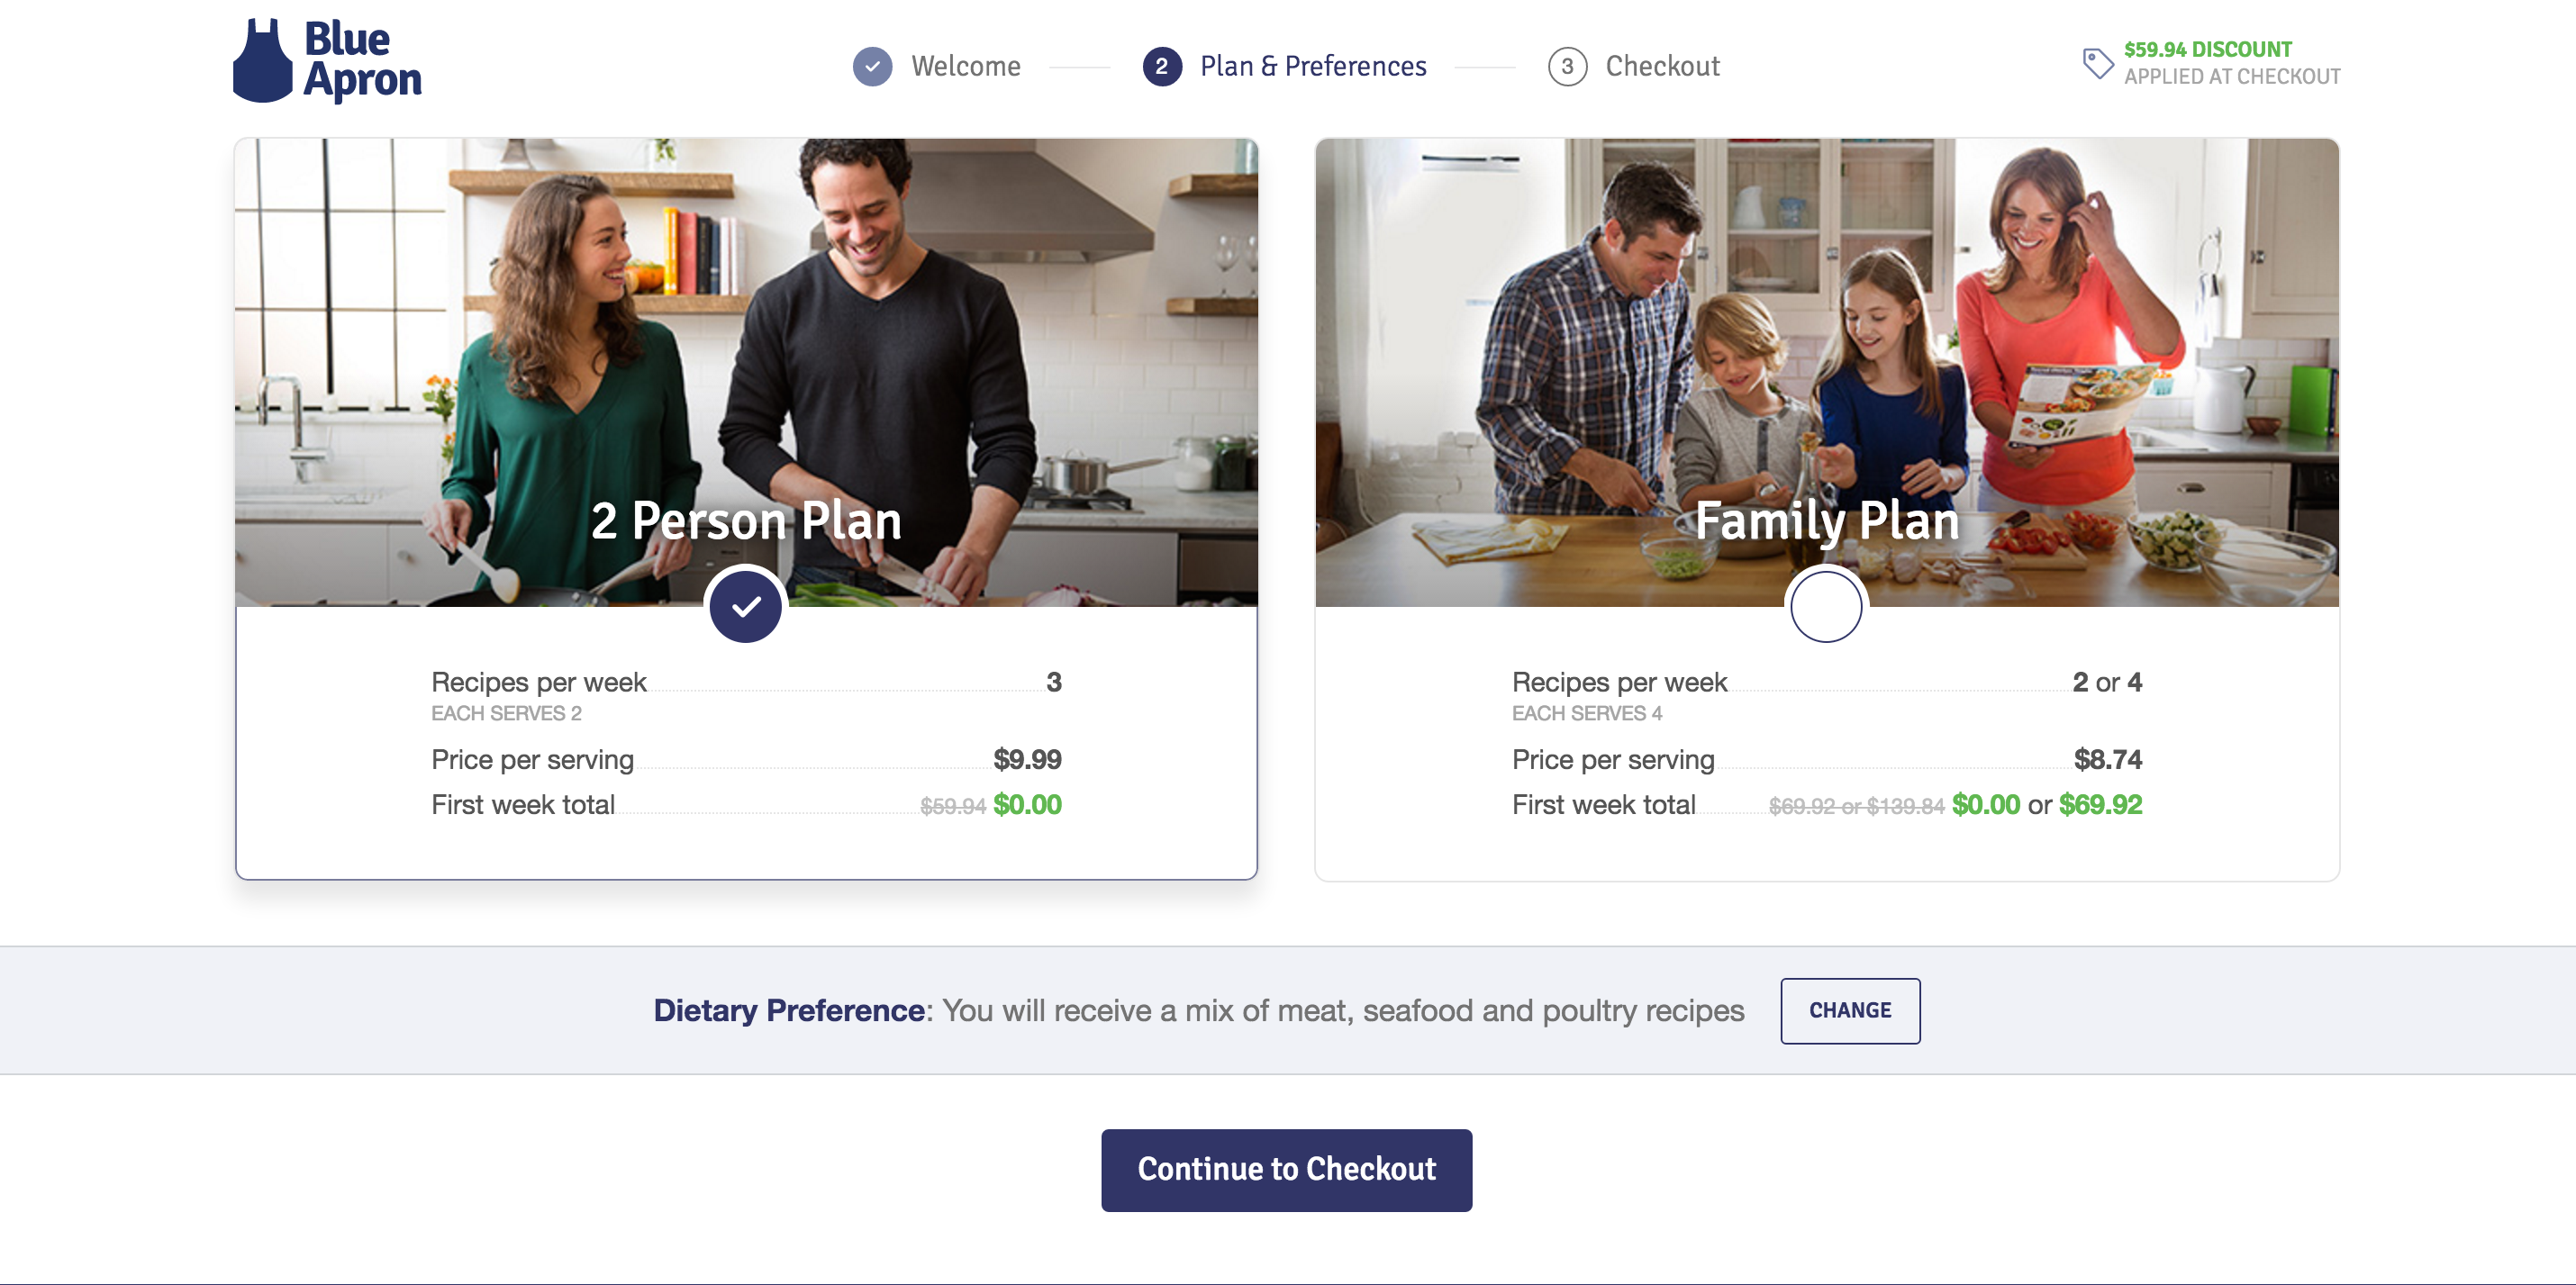 Blue Apron's onboarind screen for different plans